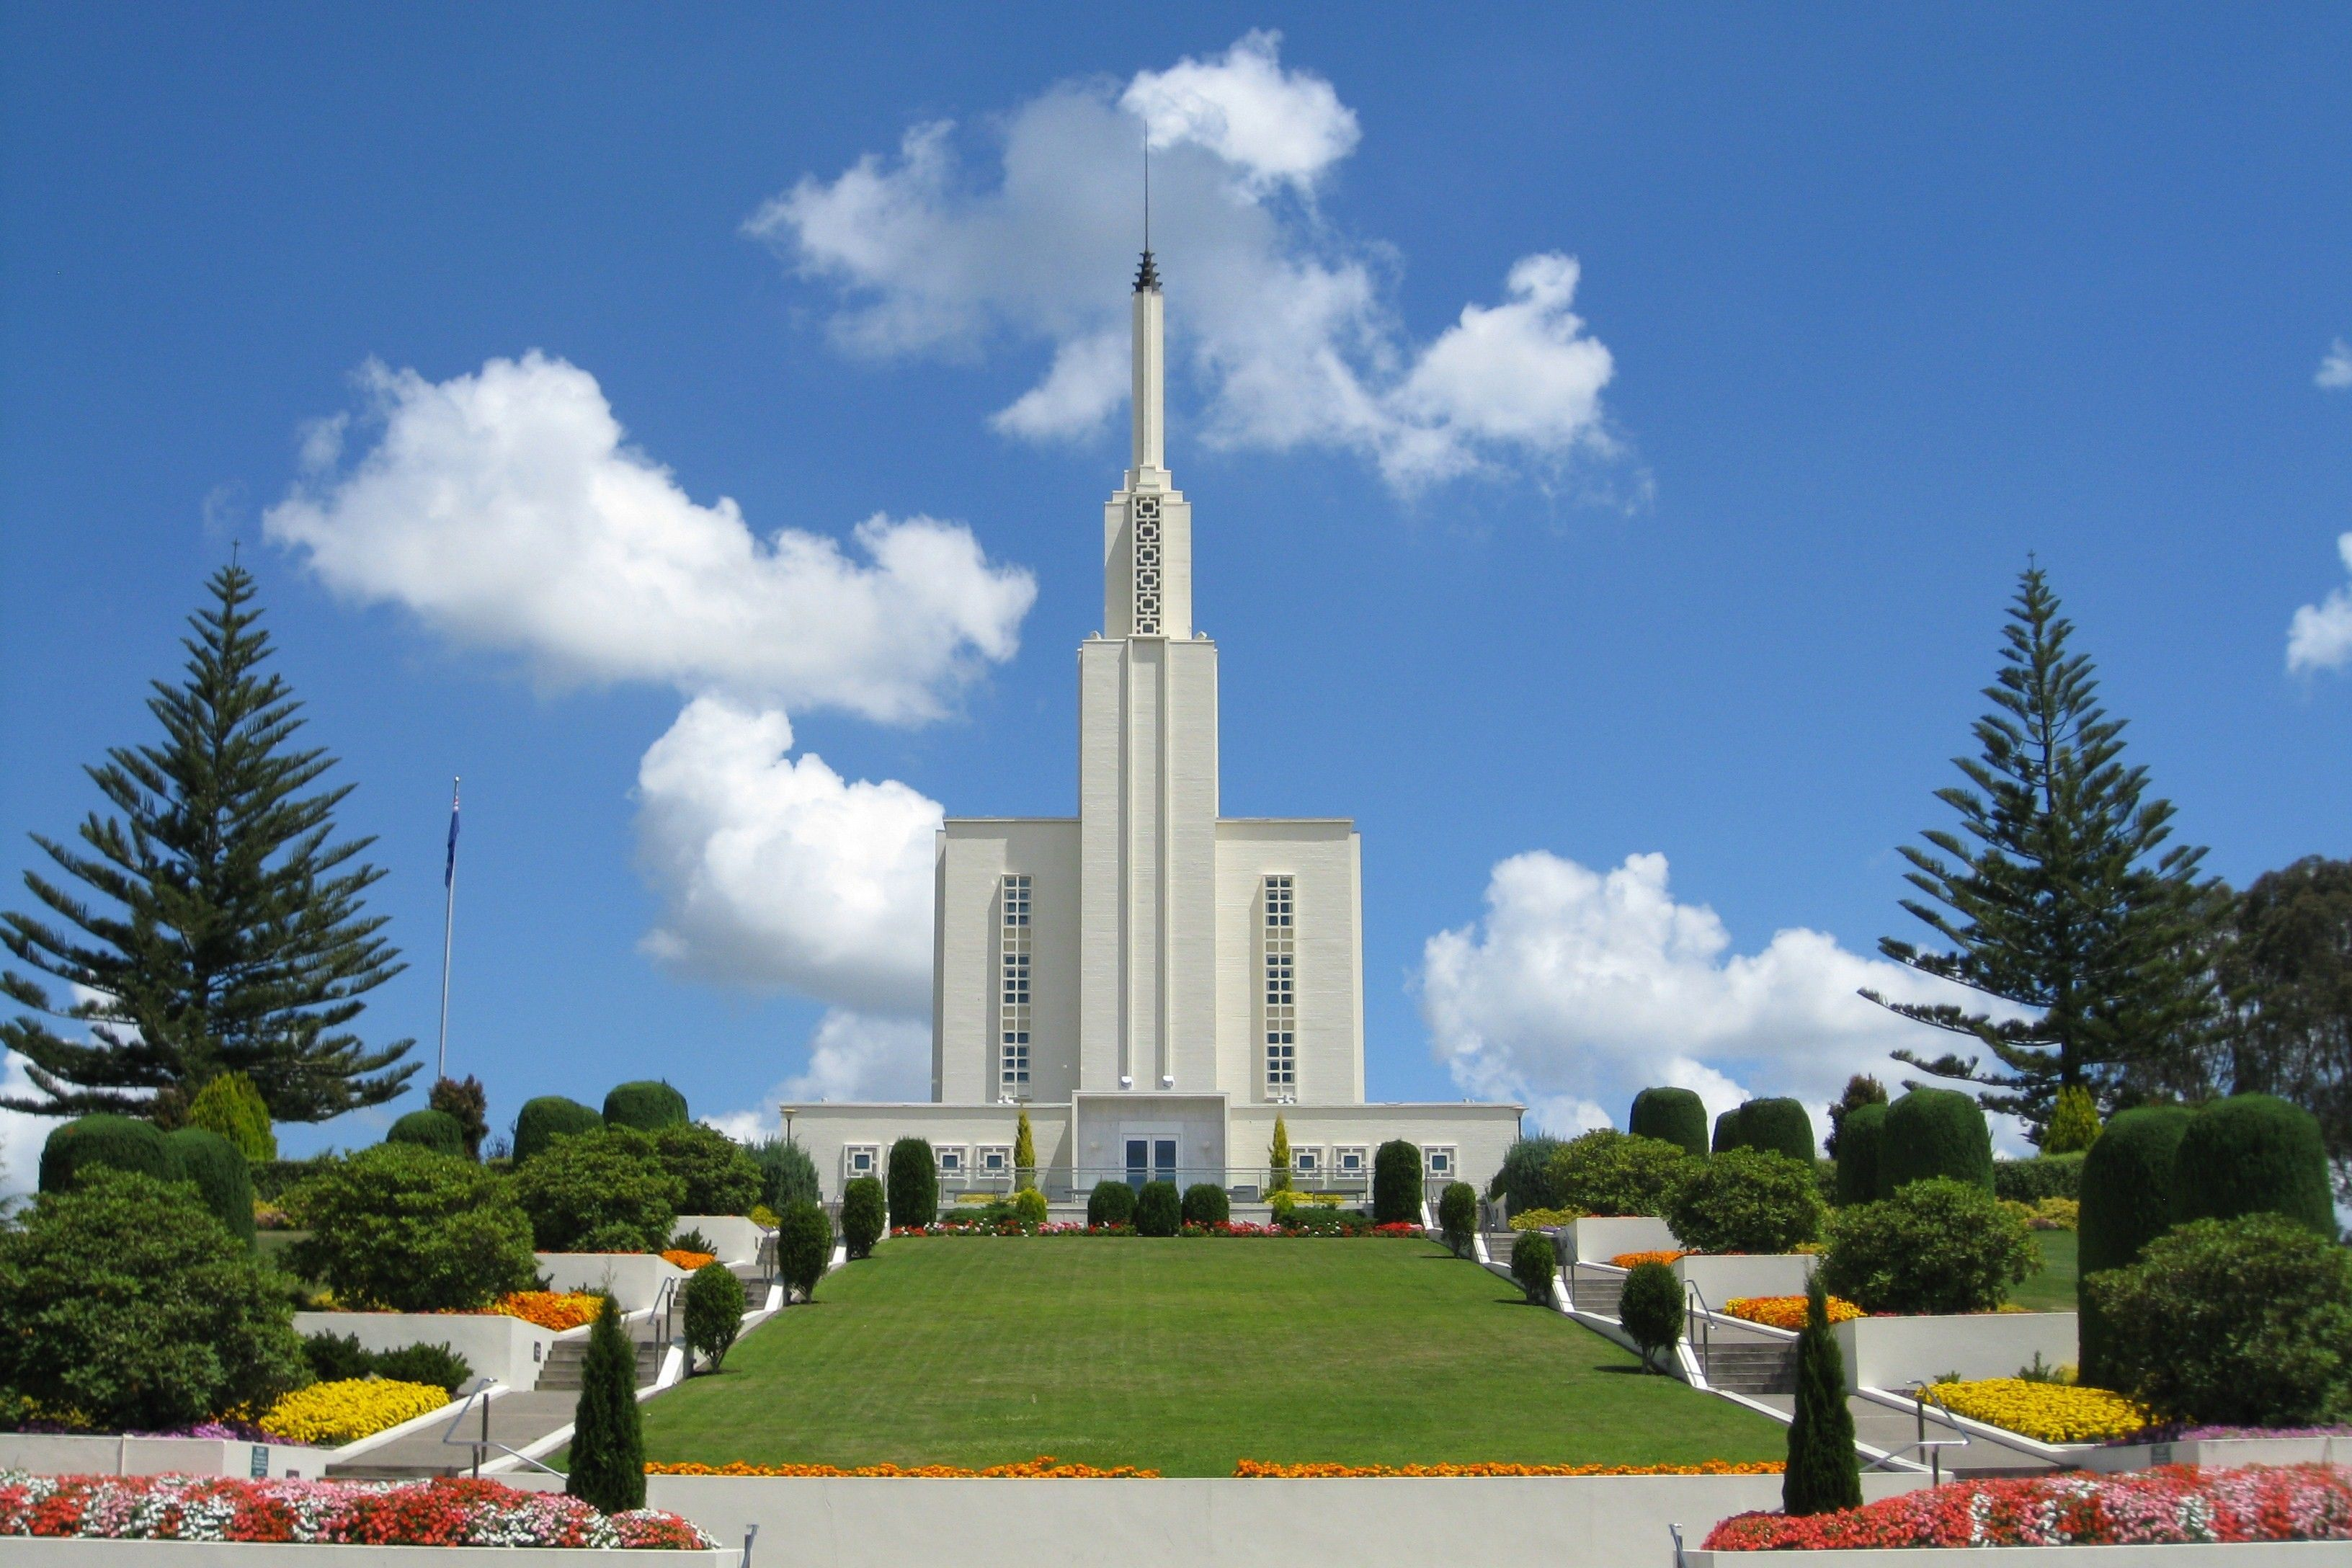 A view of the Hamilton New Zealand Temple and grounds during the day.